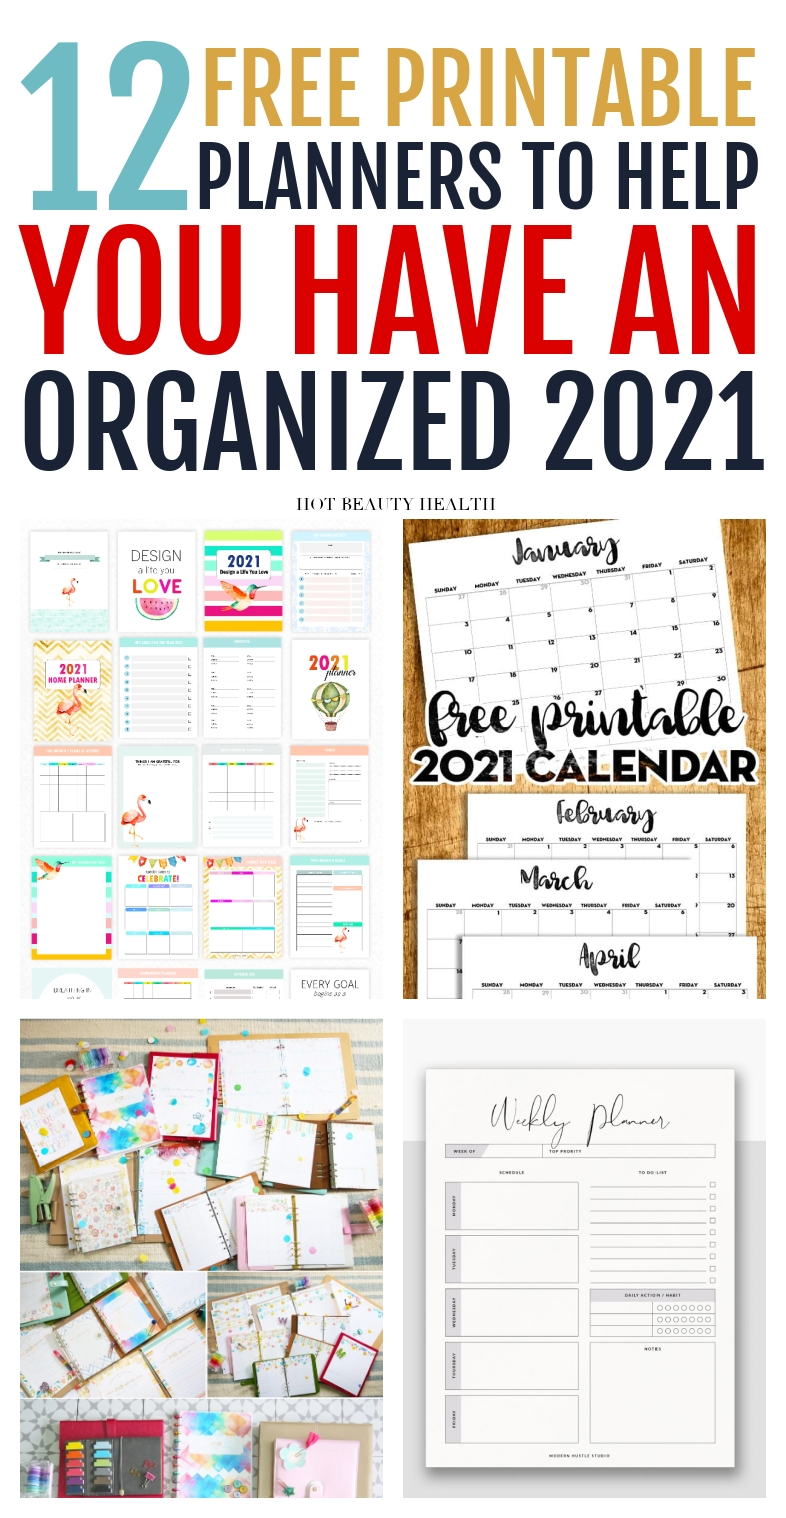 12 Free Printable Planners For 2021 To Organize Your Life-2021 Printable Bill Planner